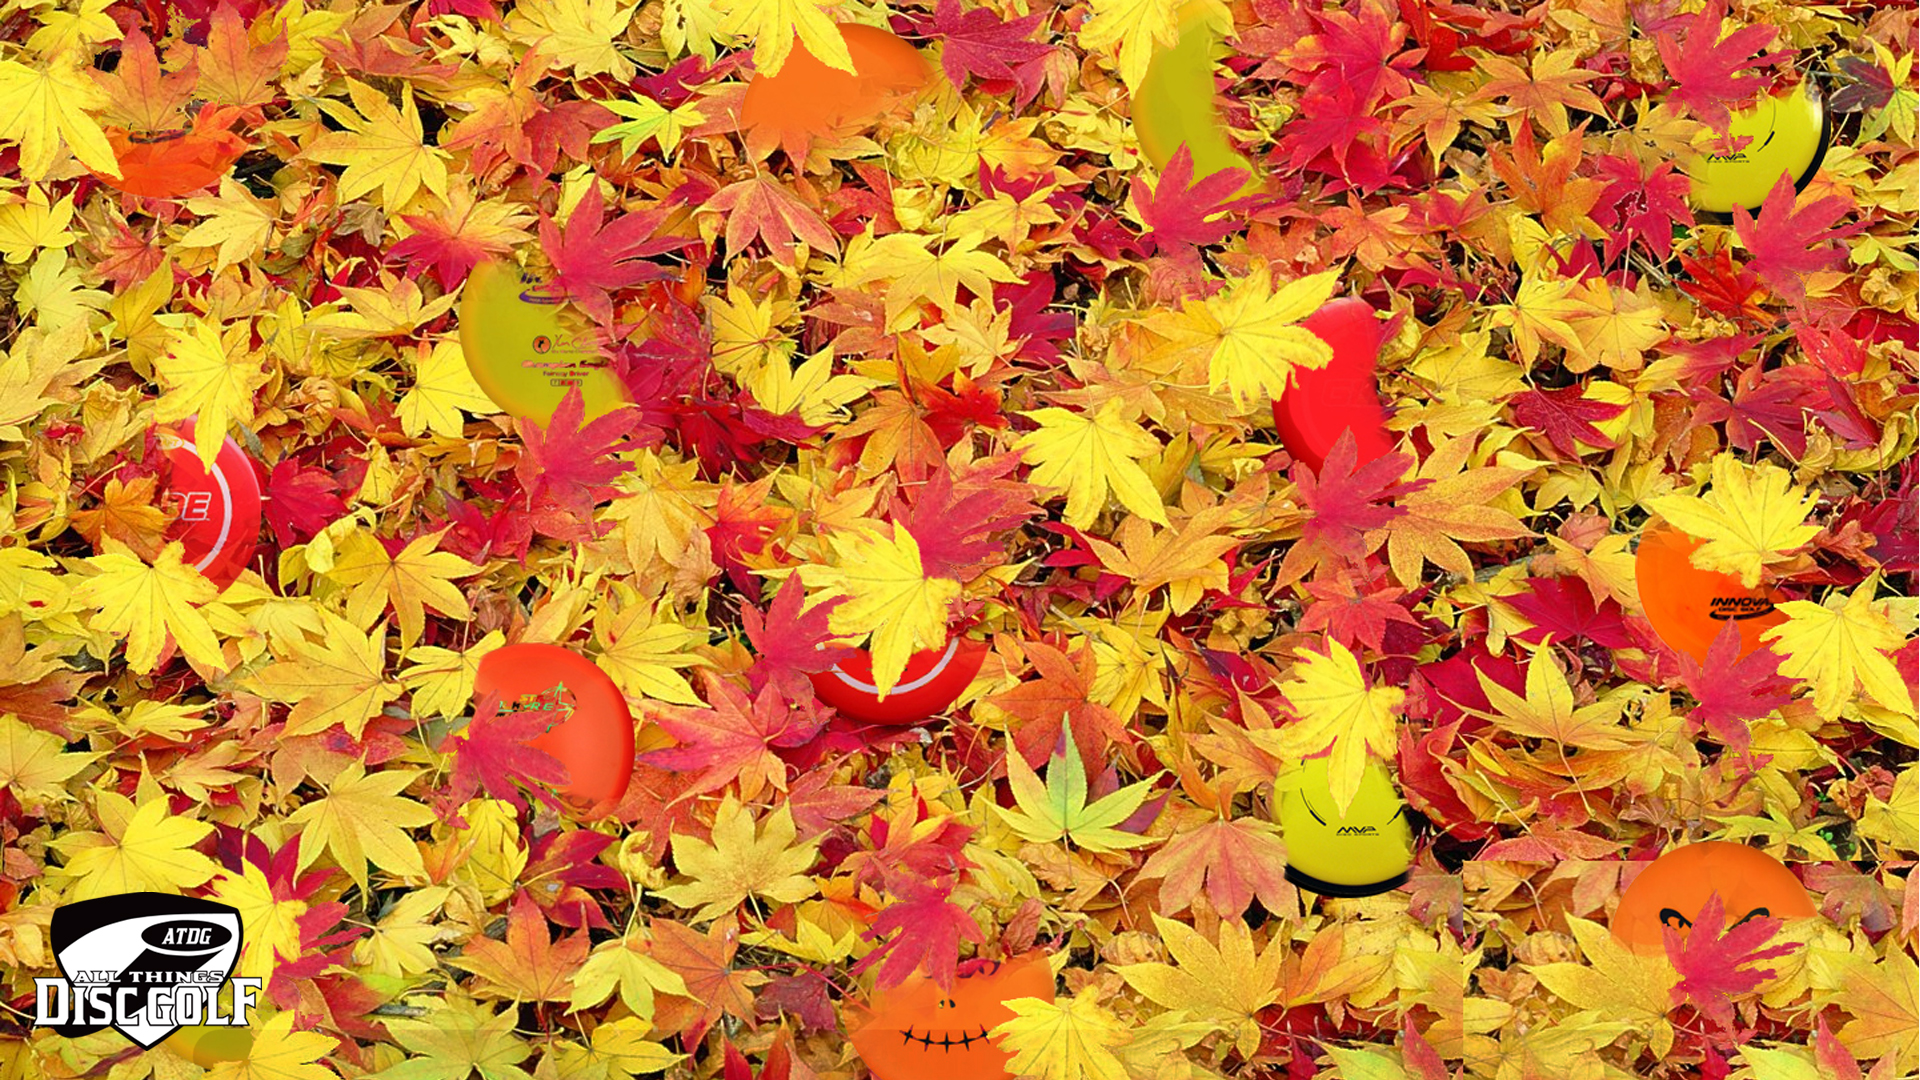 Facebook Wallpaper Fall Colors Disc Golf Backgrounds November 2014 All Things Disc Golf